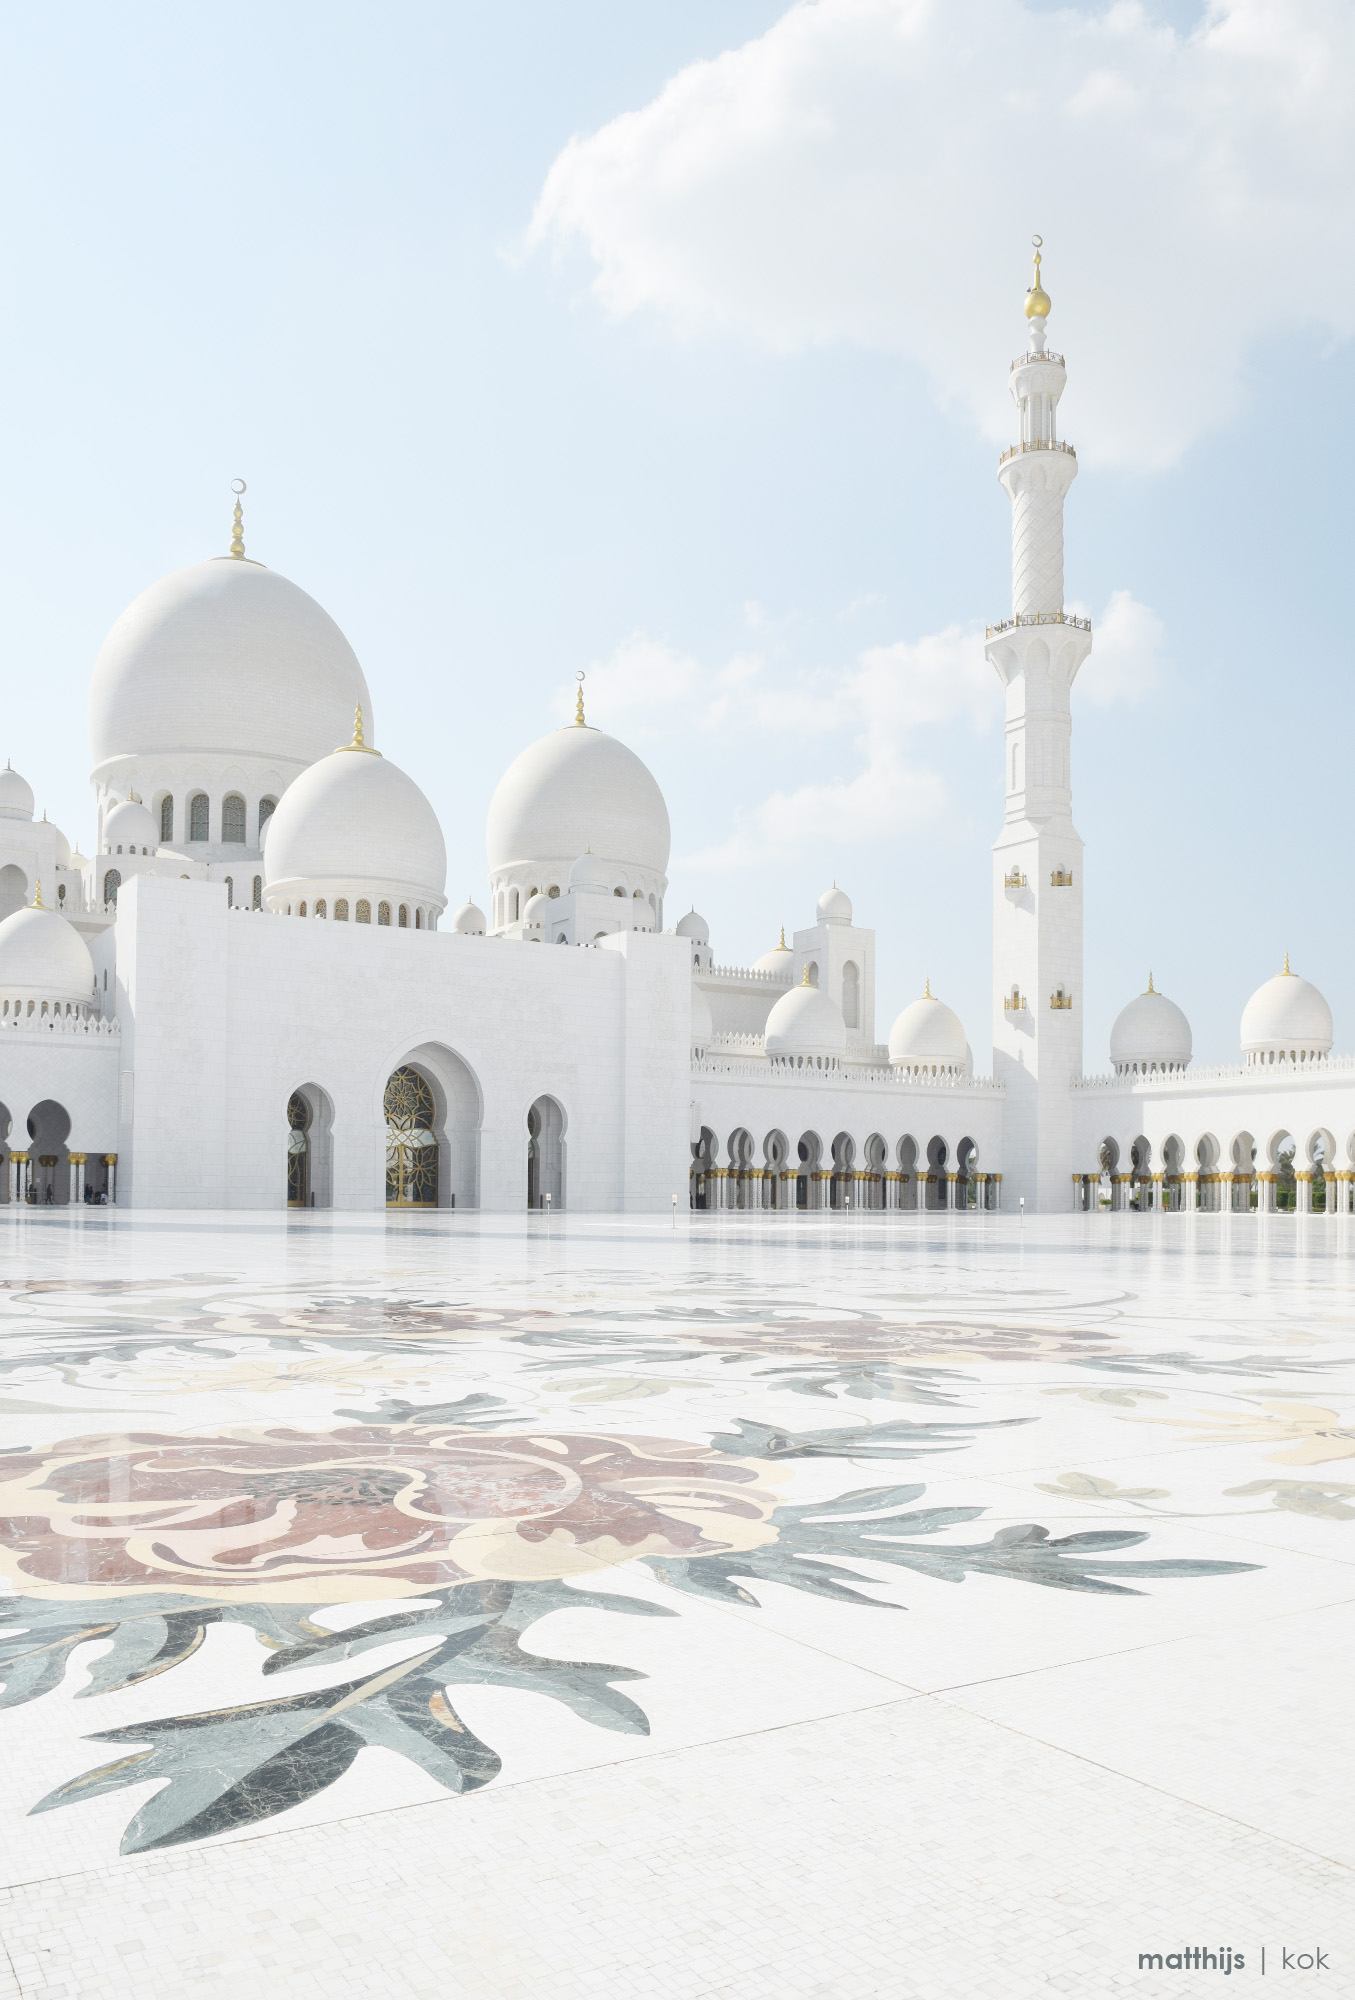 Abu Dhabi Photo Essay Matthijs Kok